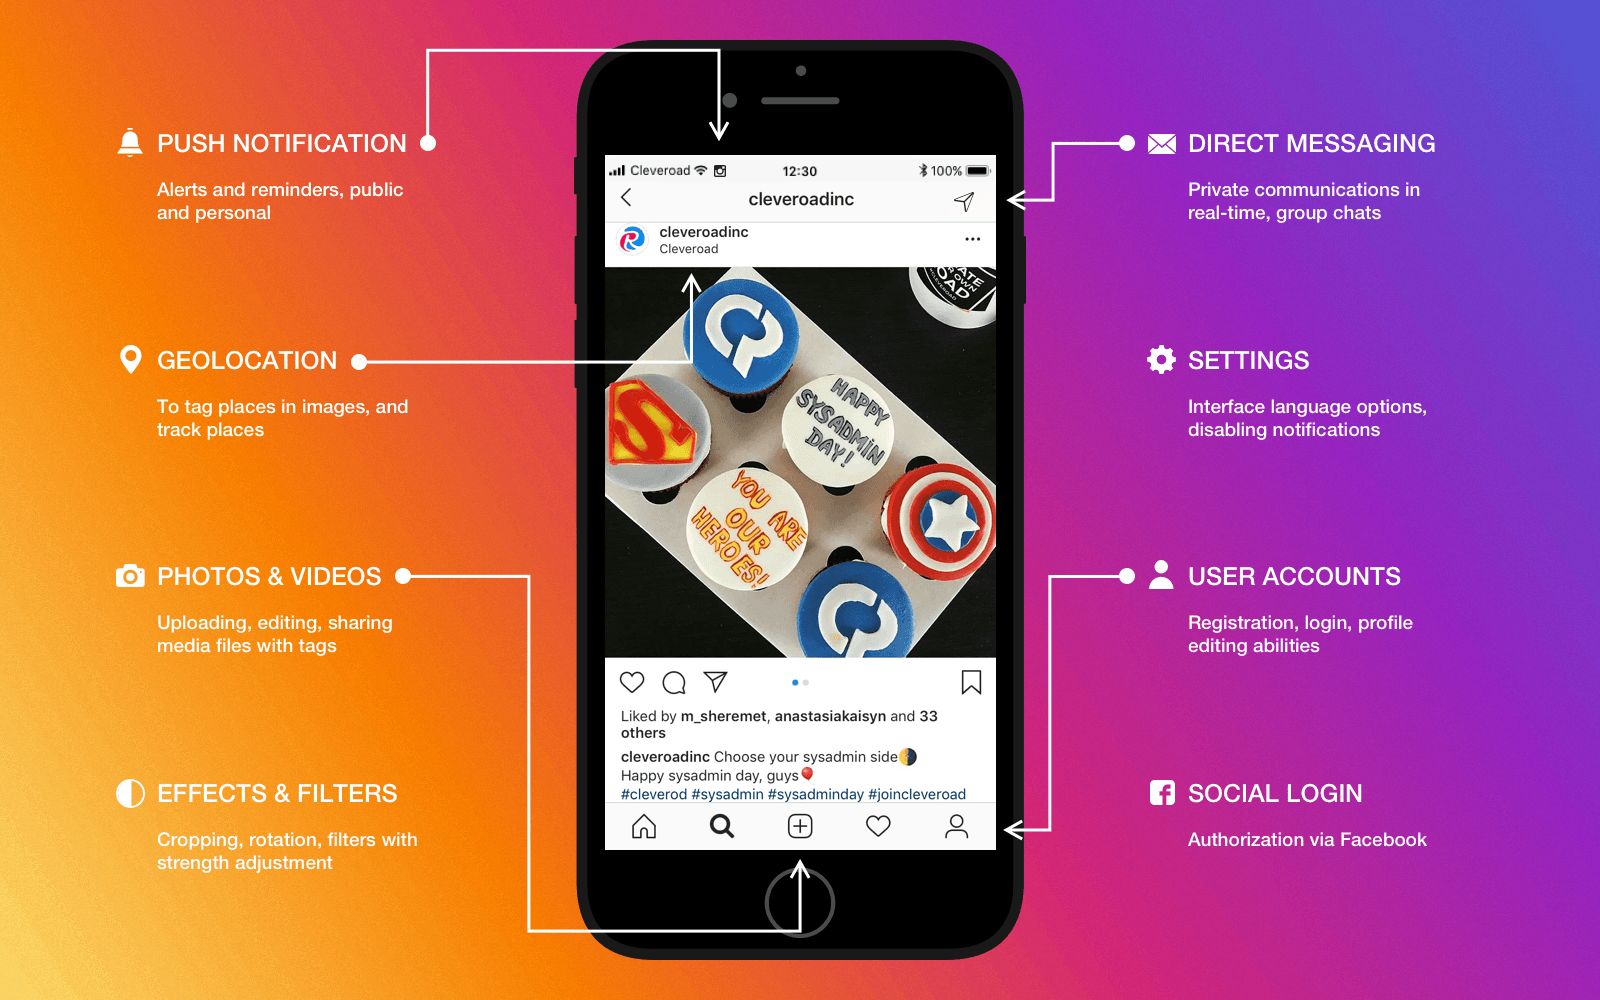 Features of trending networking apps like Instagram